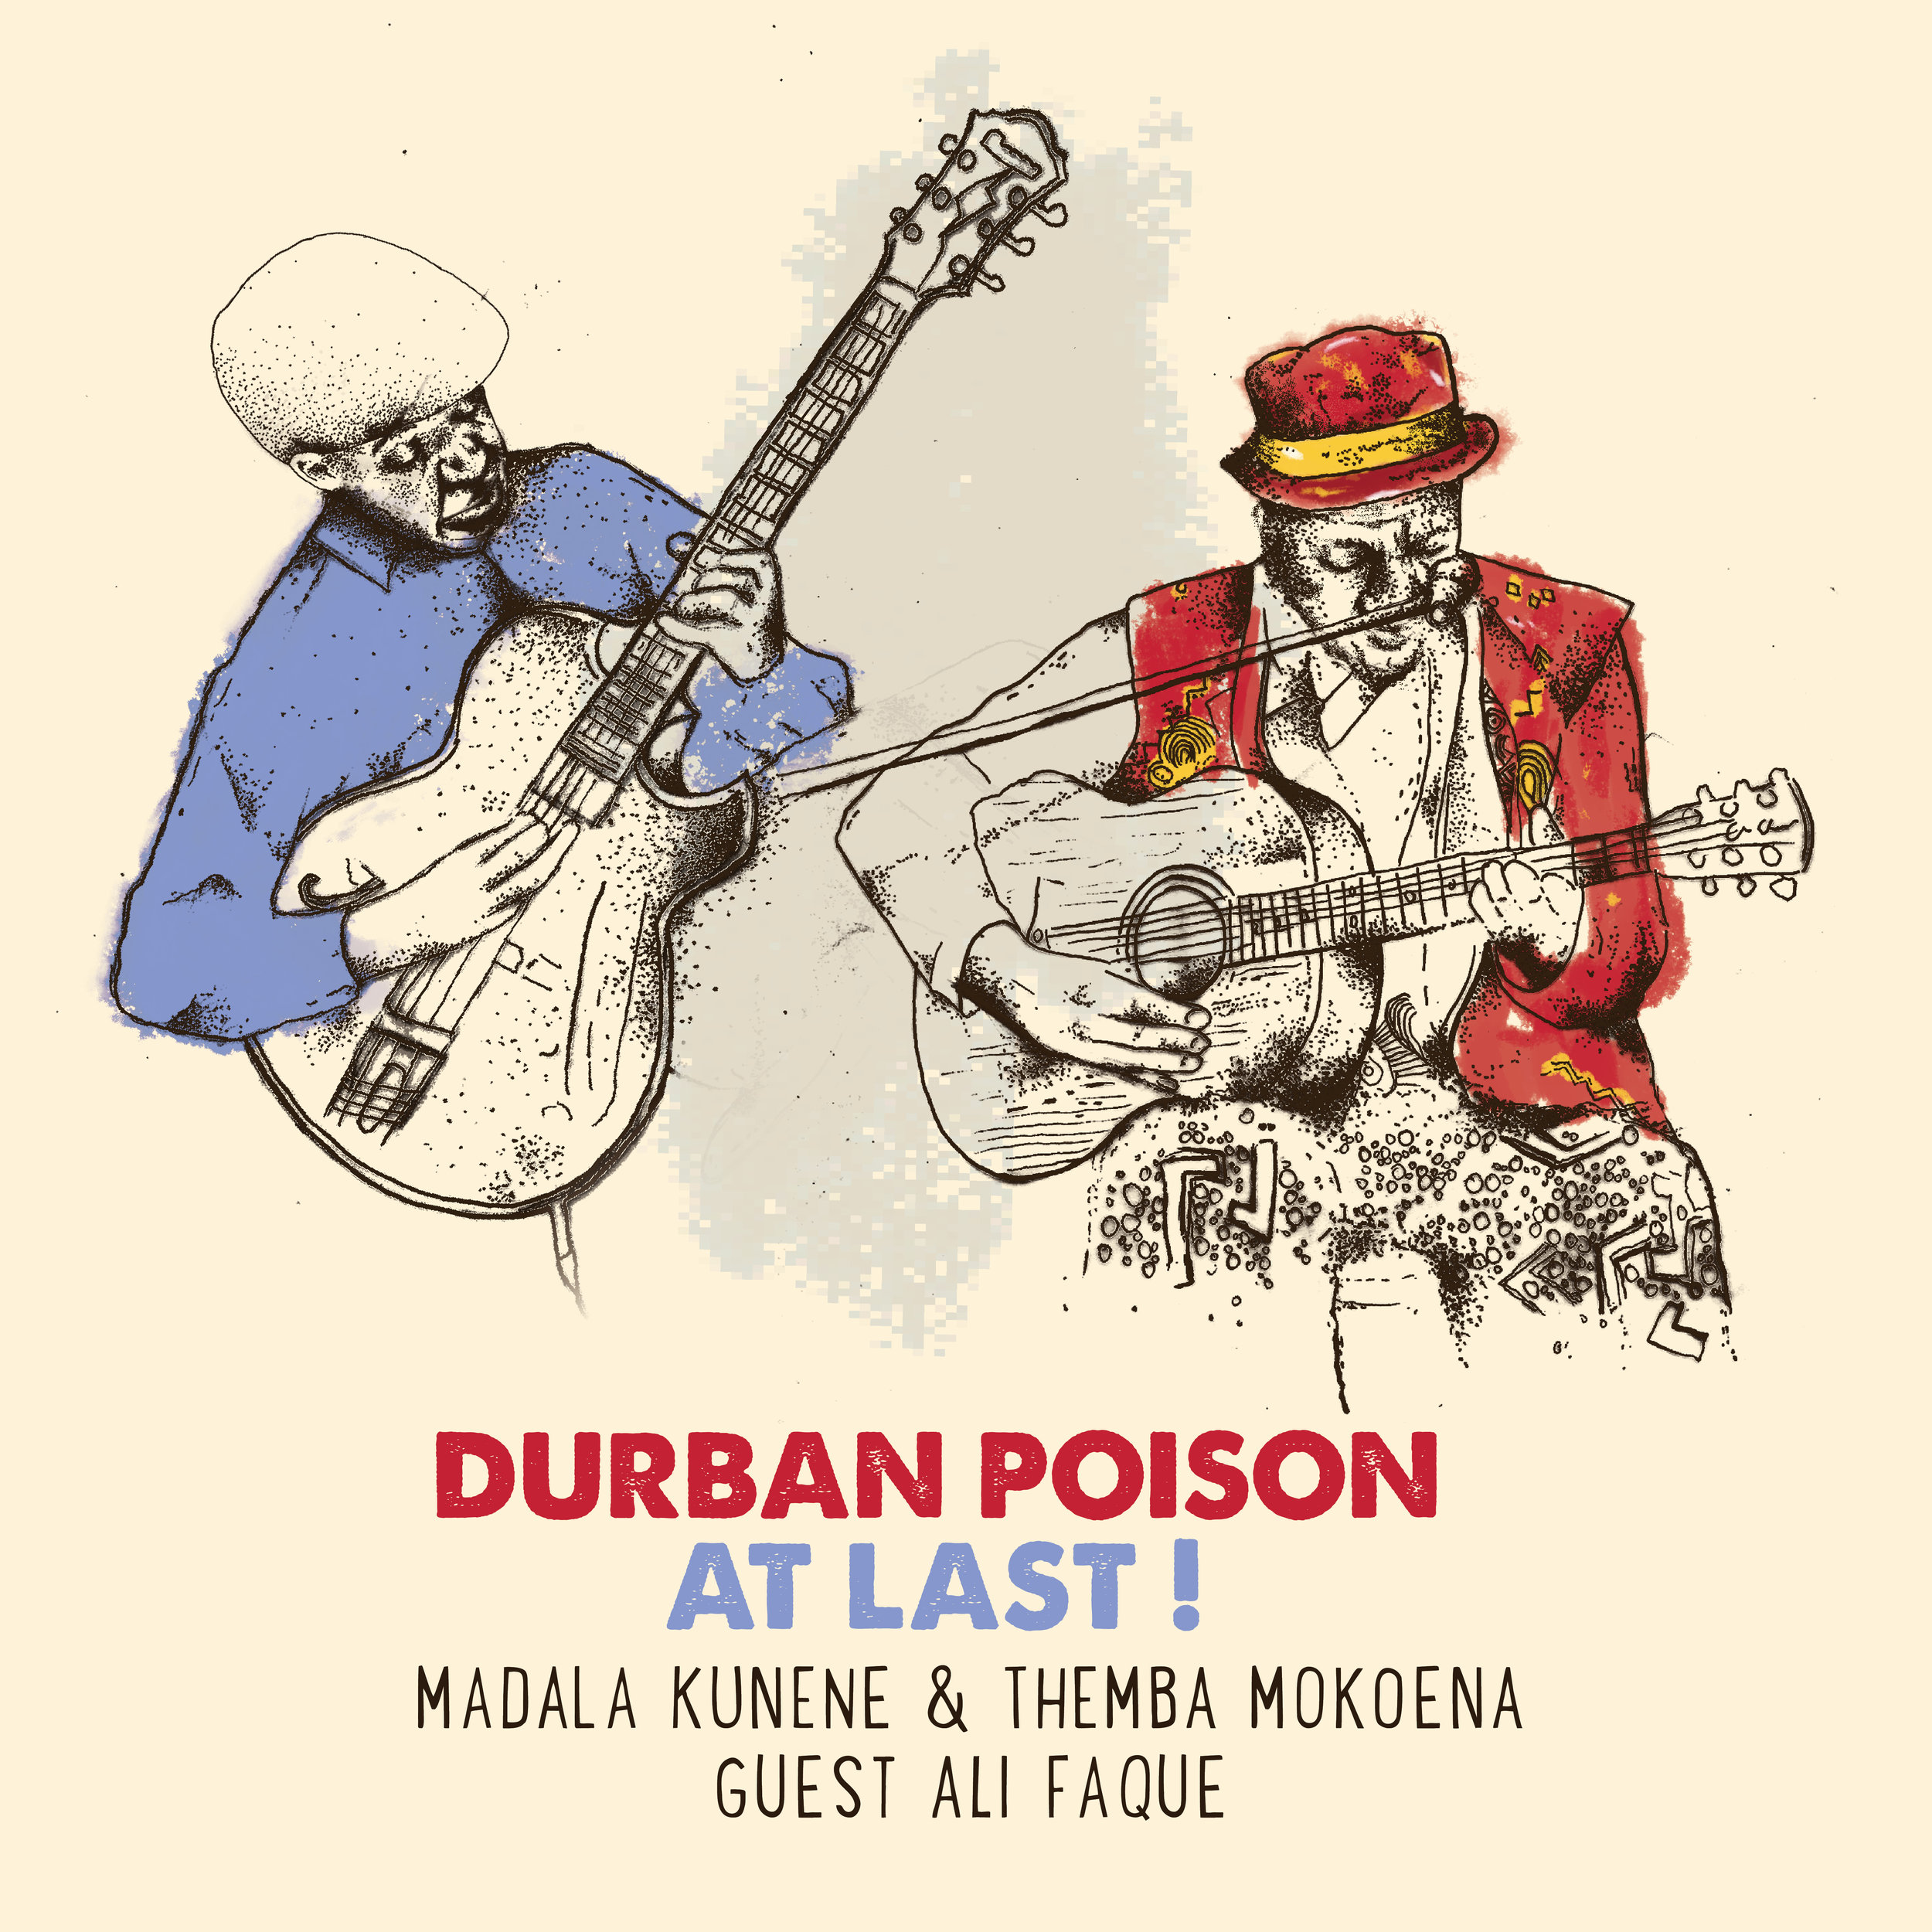 MADALA KUNENE & THEMBA MOKOENA Durban Poison artwork digital.jpg